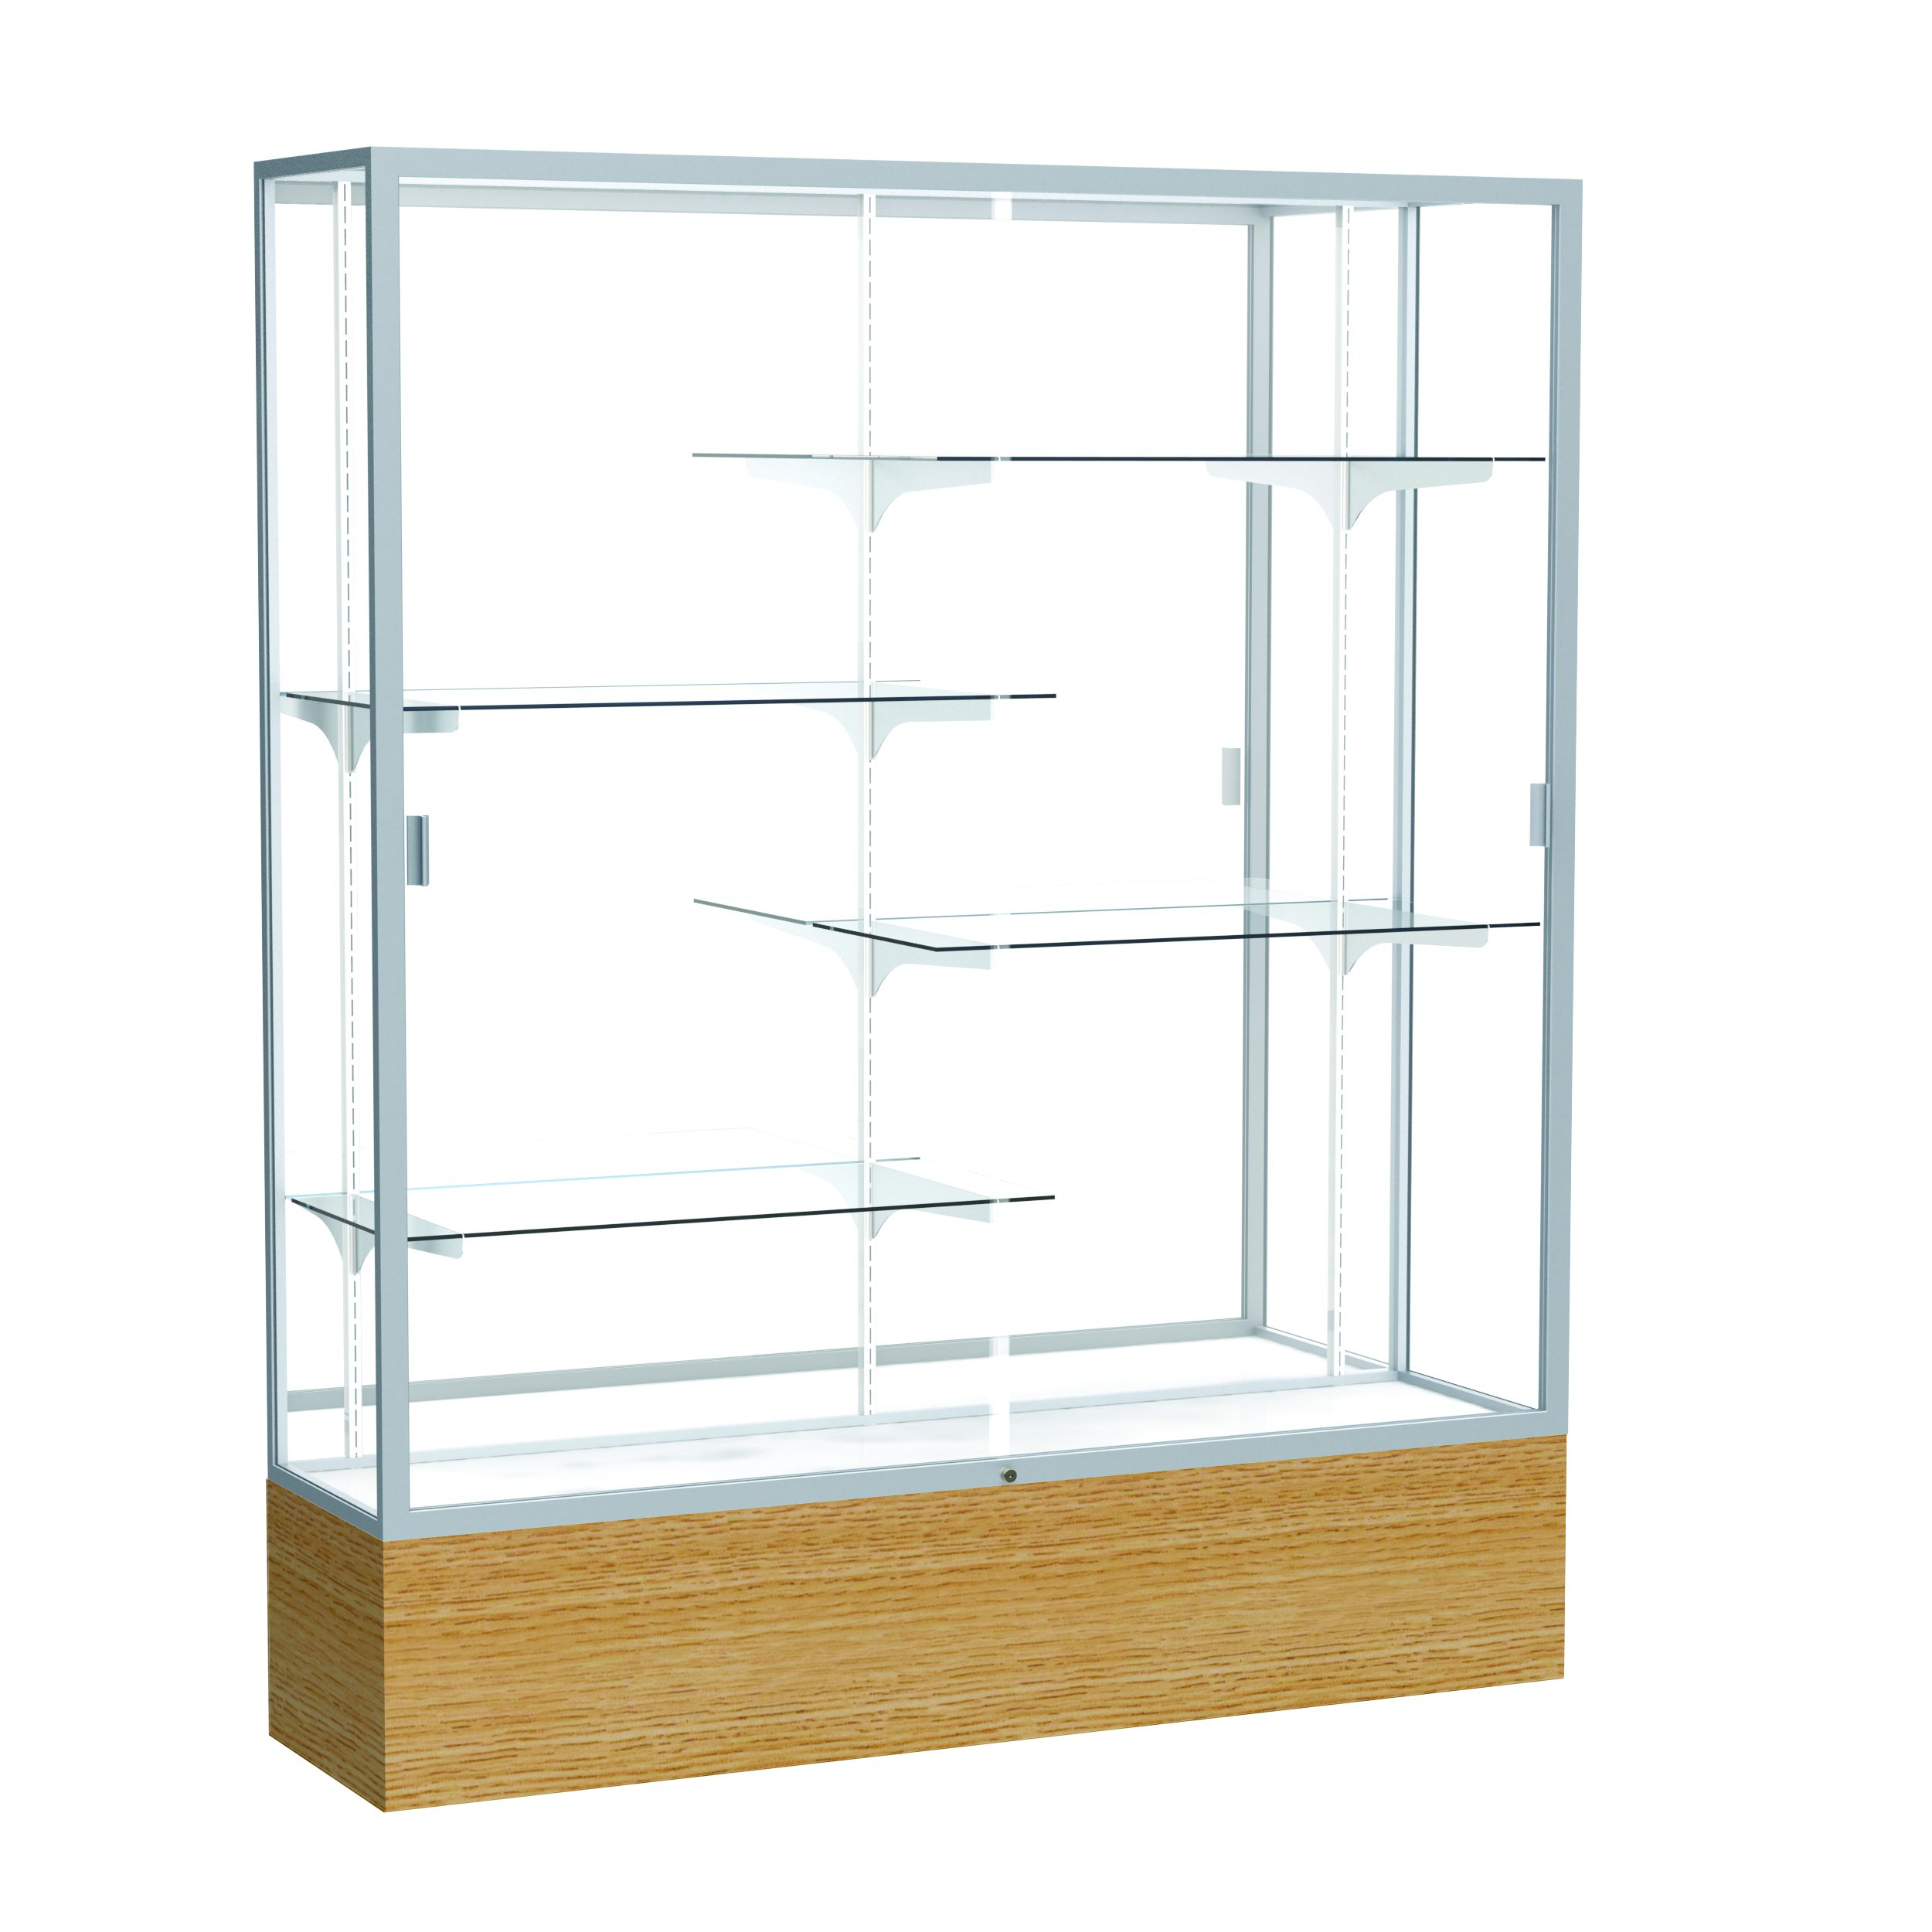 Waddell 2075MB-SN-AK Reliant Floor Display Case, Mirror, 6' by Waddell